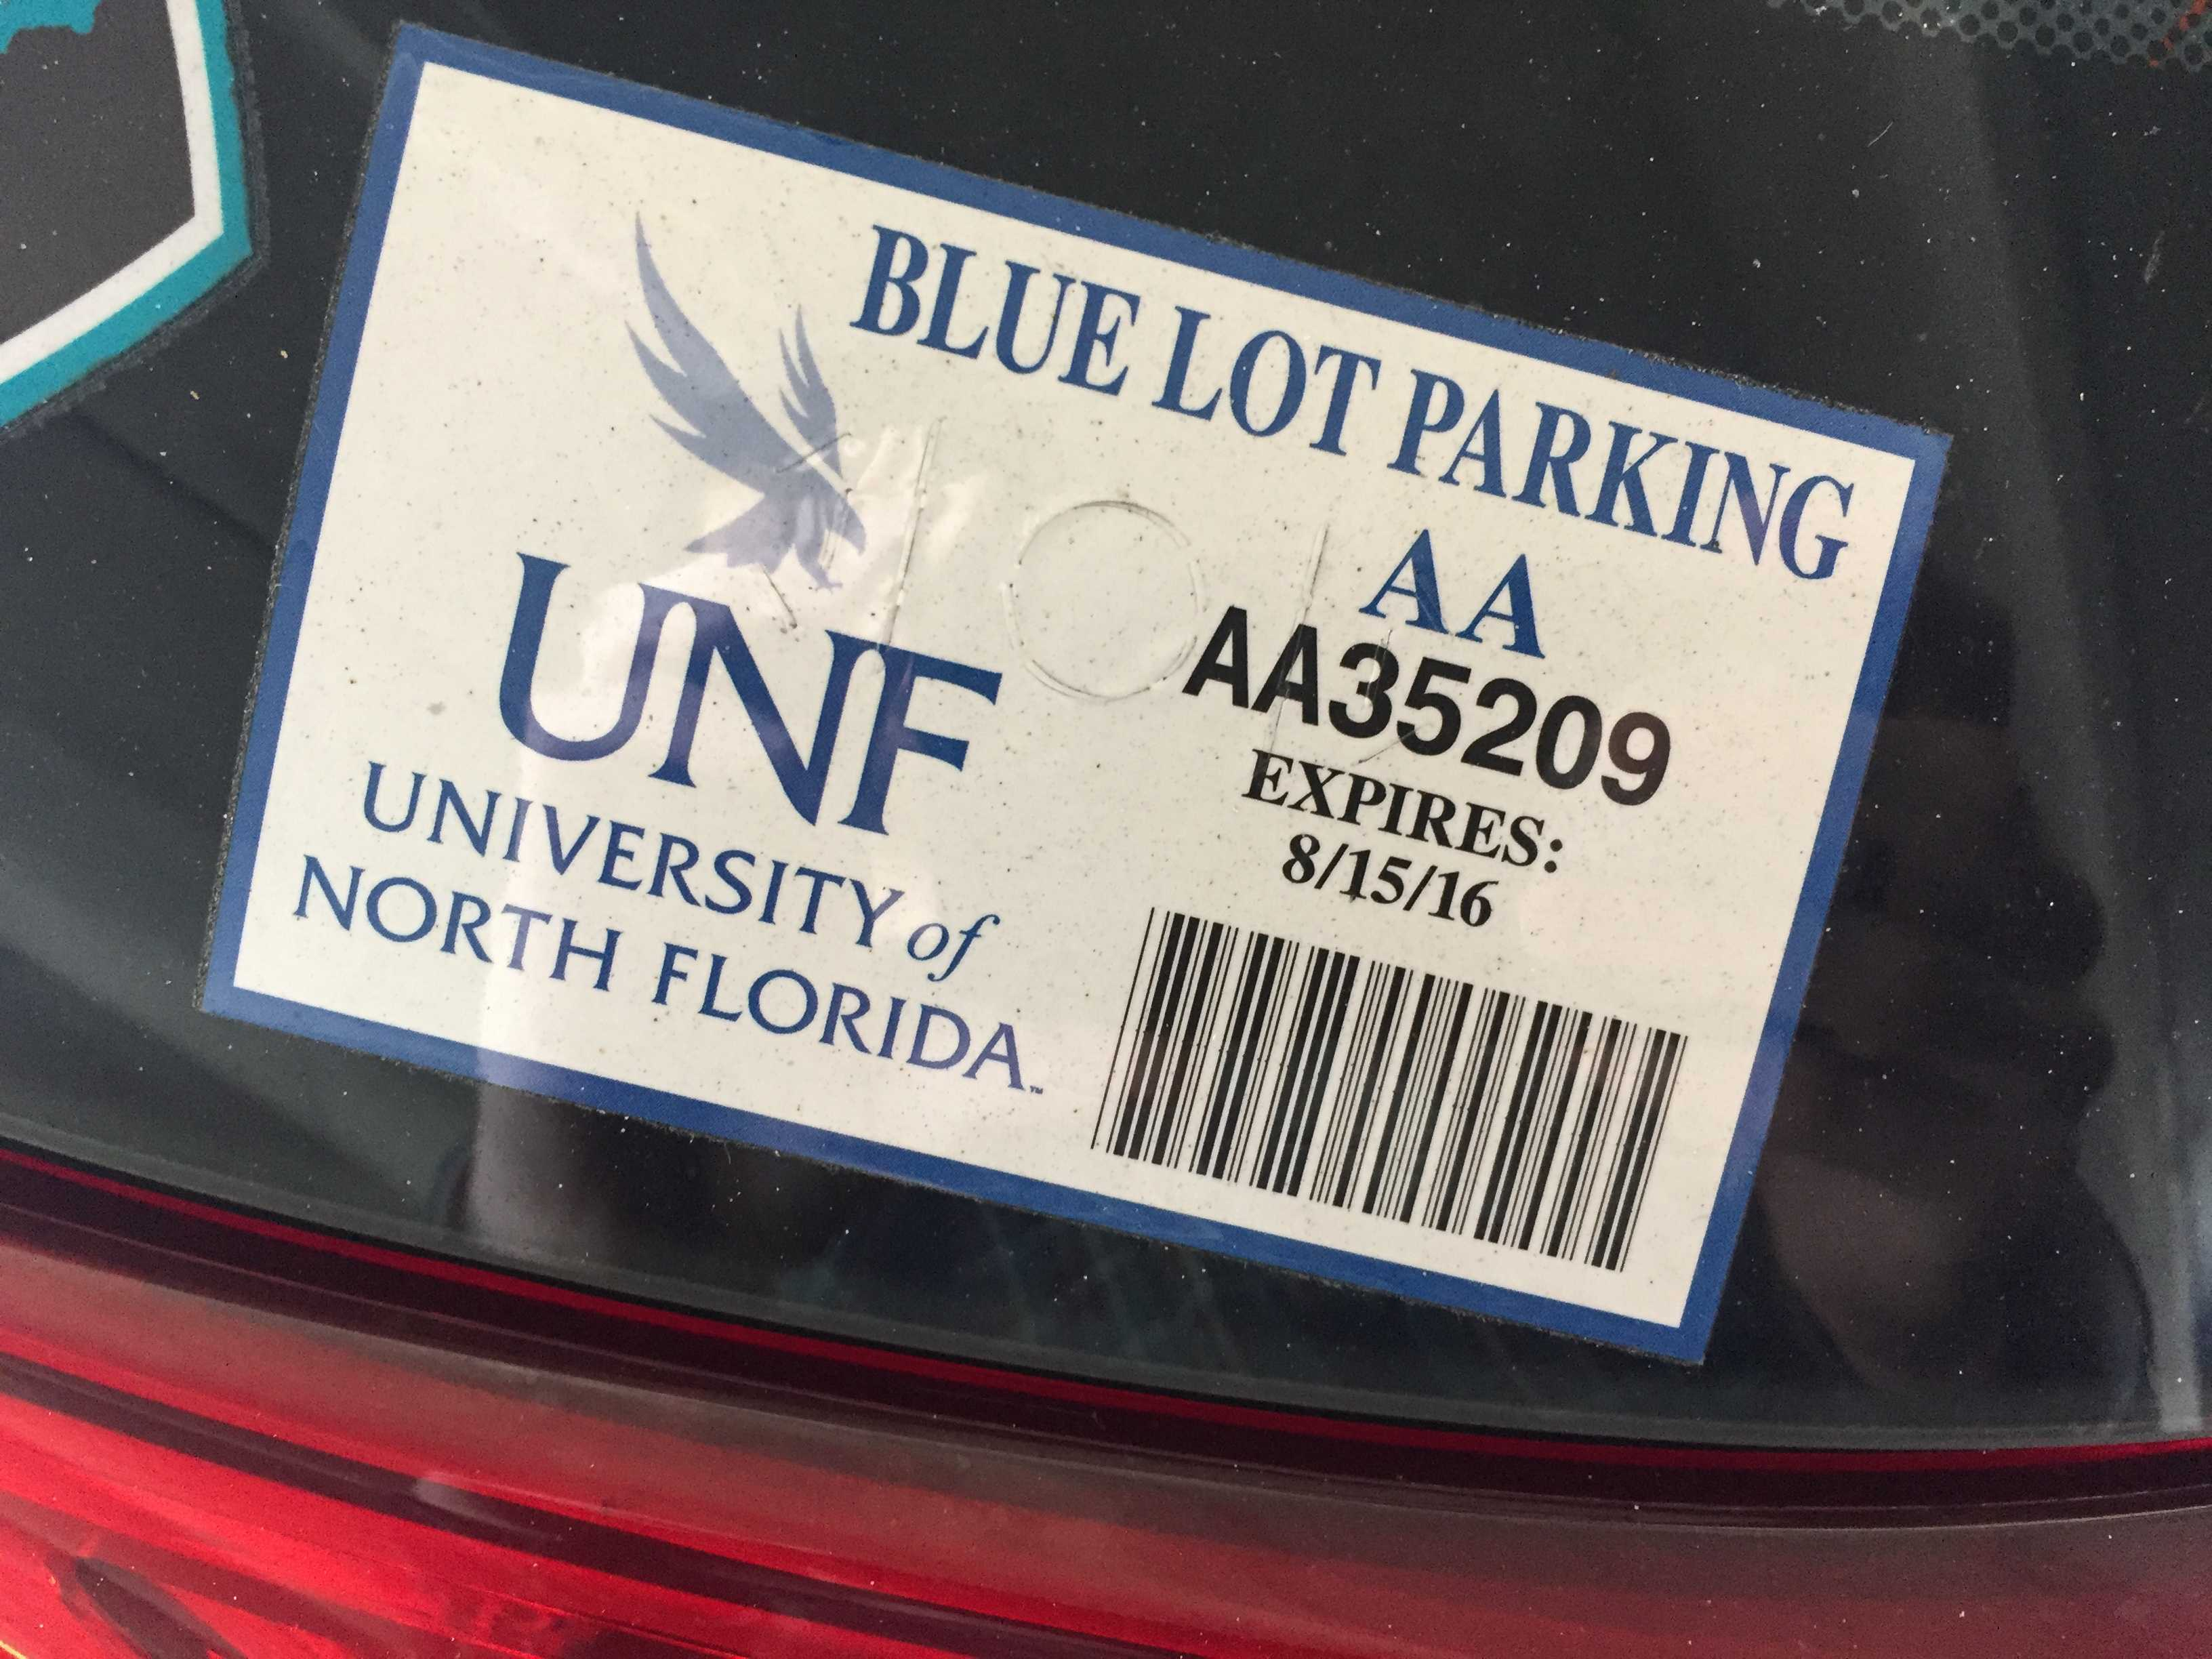 Procrastinators beware: Parking permits expire today